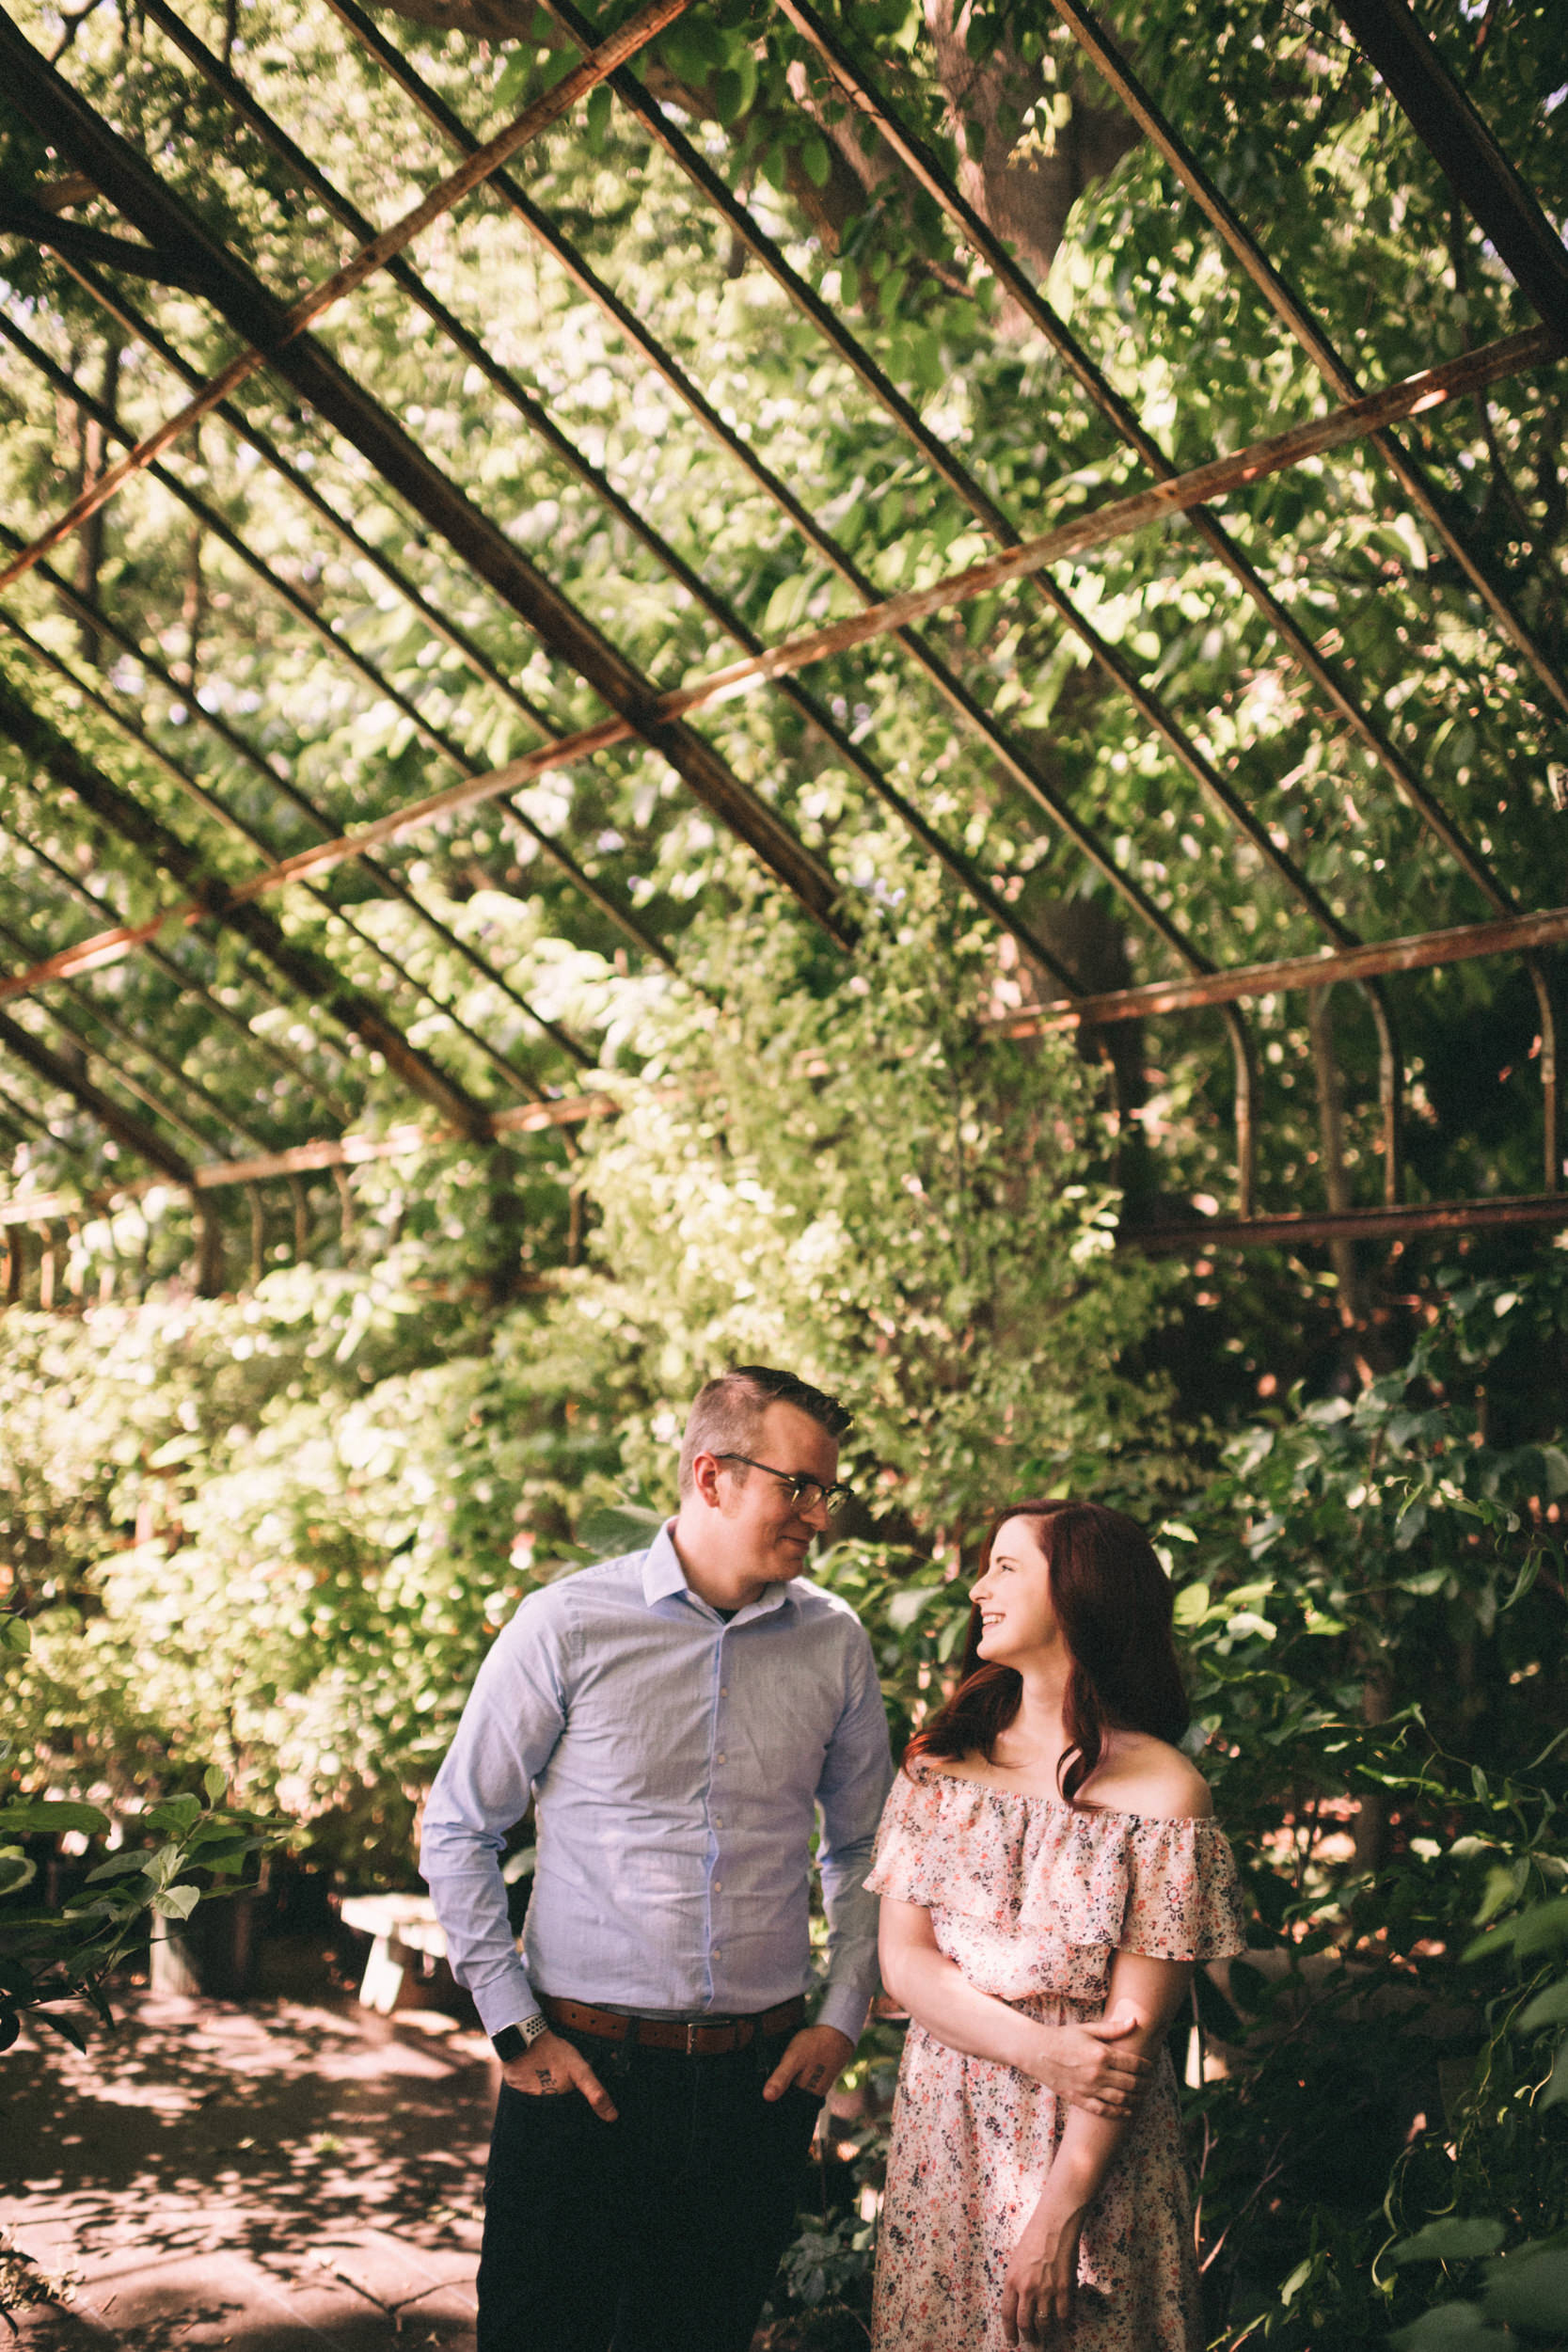 stephanie-brandon-sarah-katherine-davis-photographer-greenhouse-engagement-session-kentucky-64.jpg